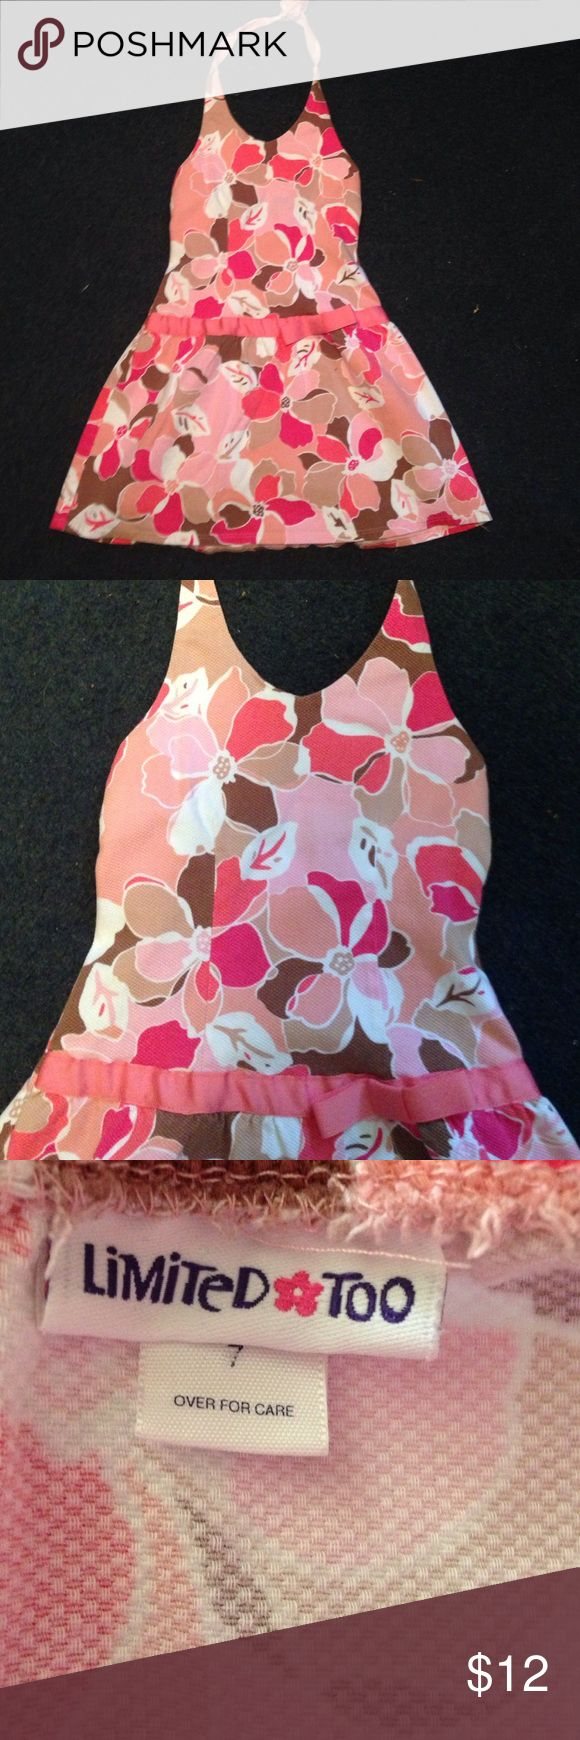 Cute halter sundress from Limited Too. Sz 7 Cute little halter/ sundress by Limited Too. Girls sz 7 Limited too Dresses